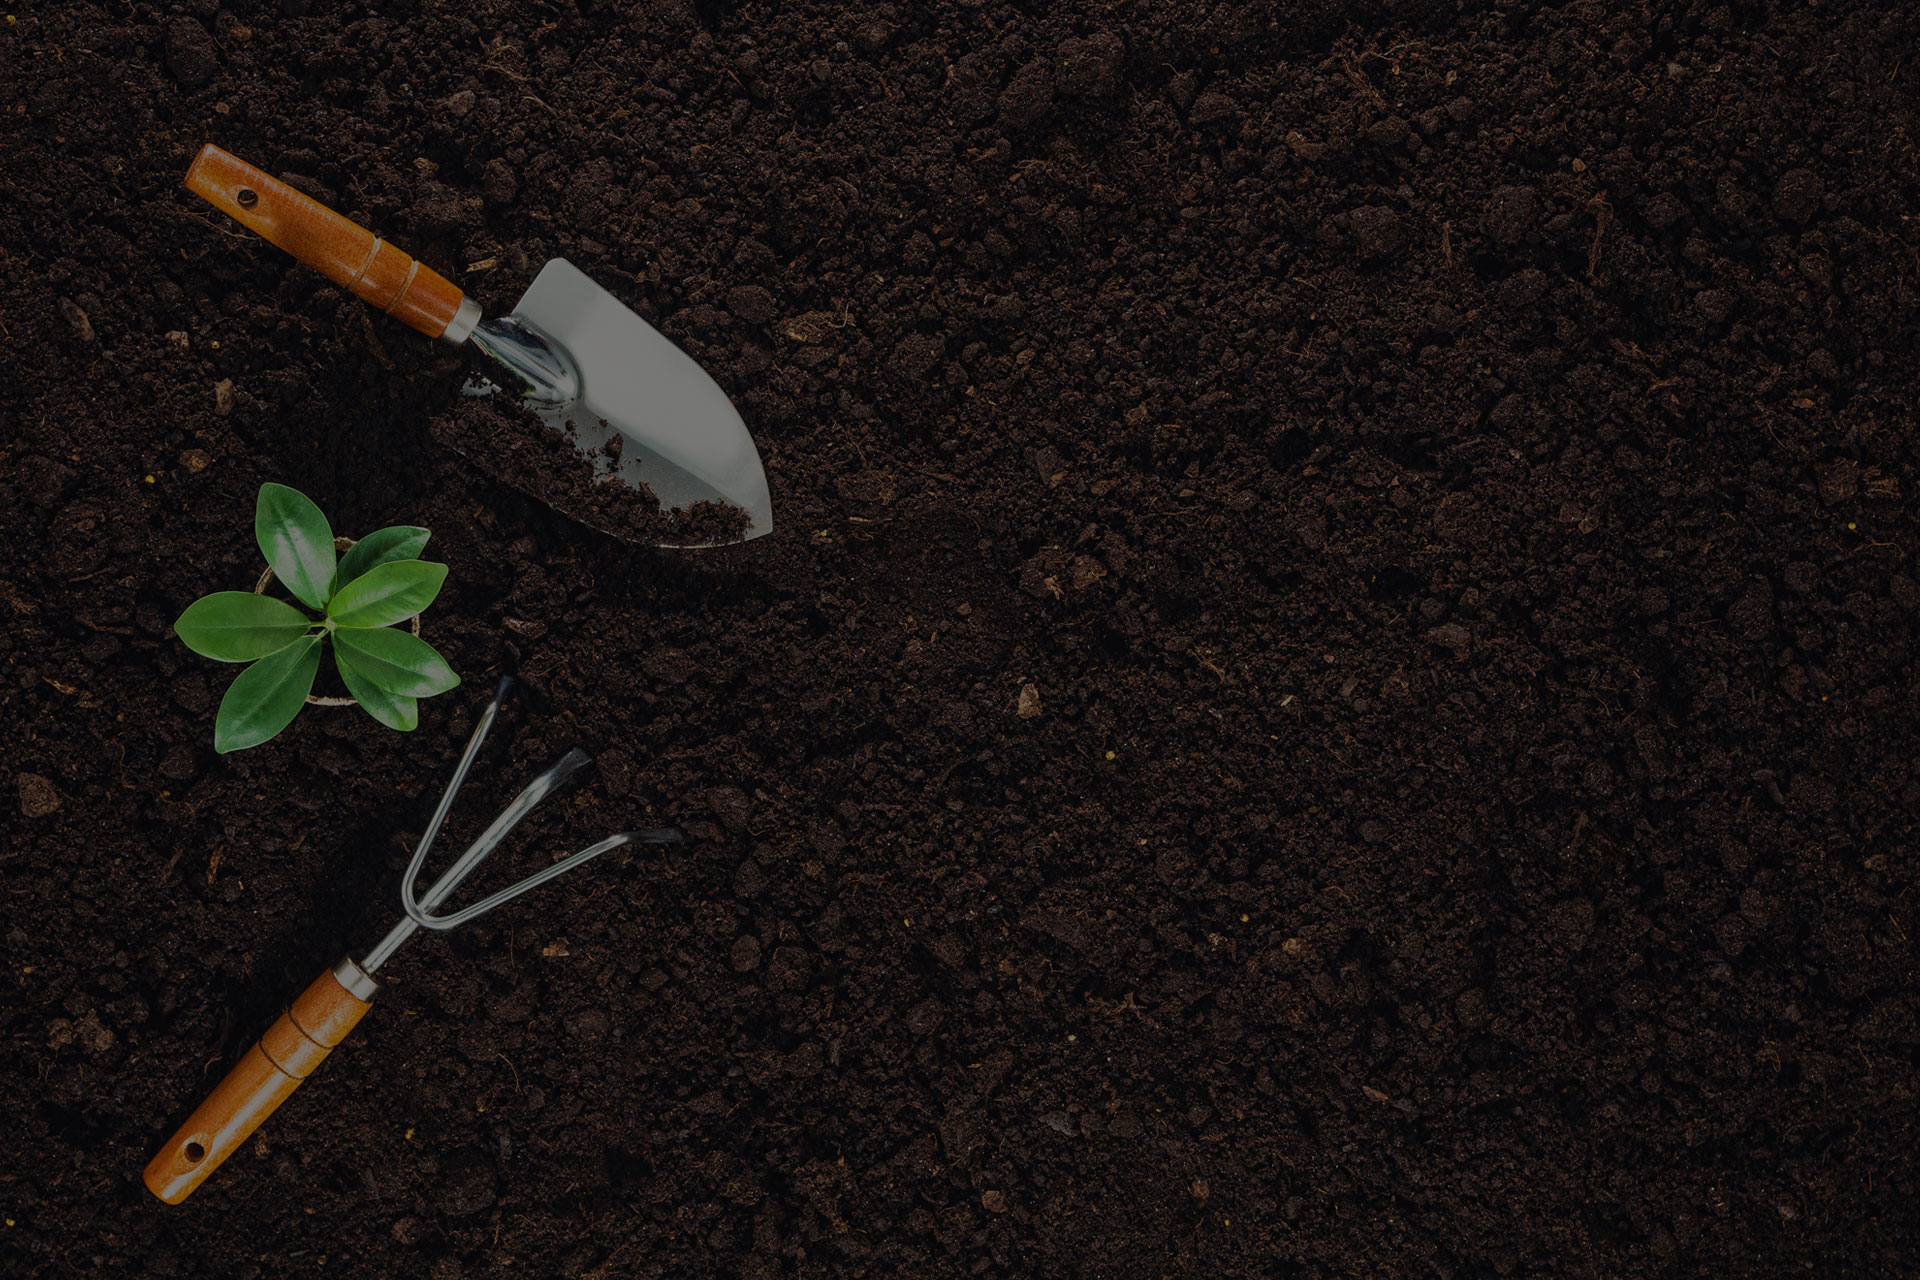 Gardening tools on fertile soil texture background seen from above, top view. Gardening or planting concept.